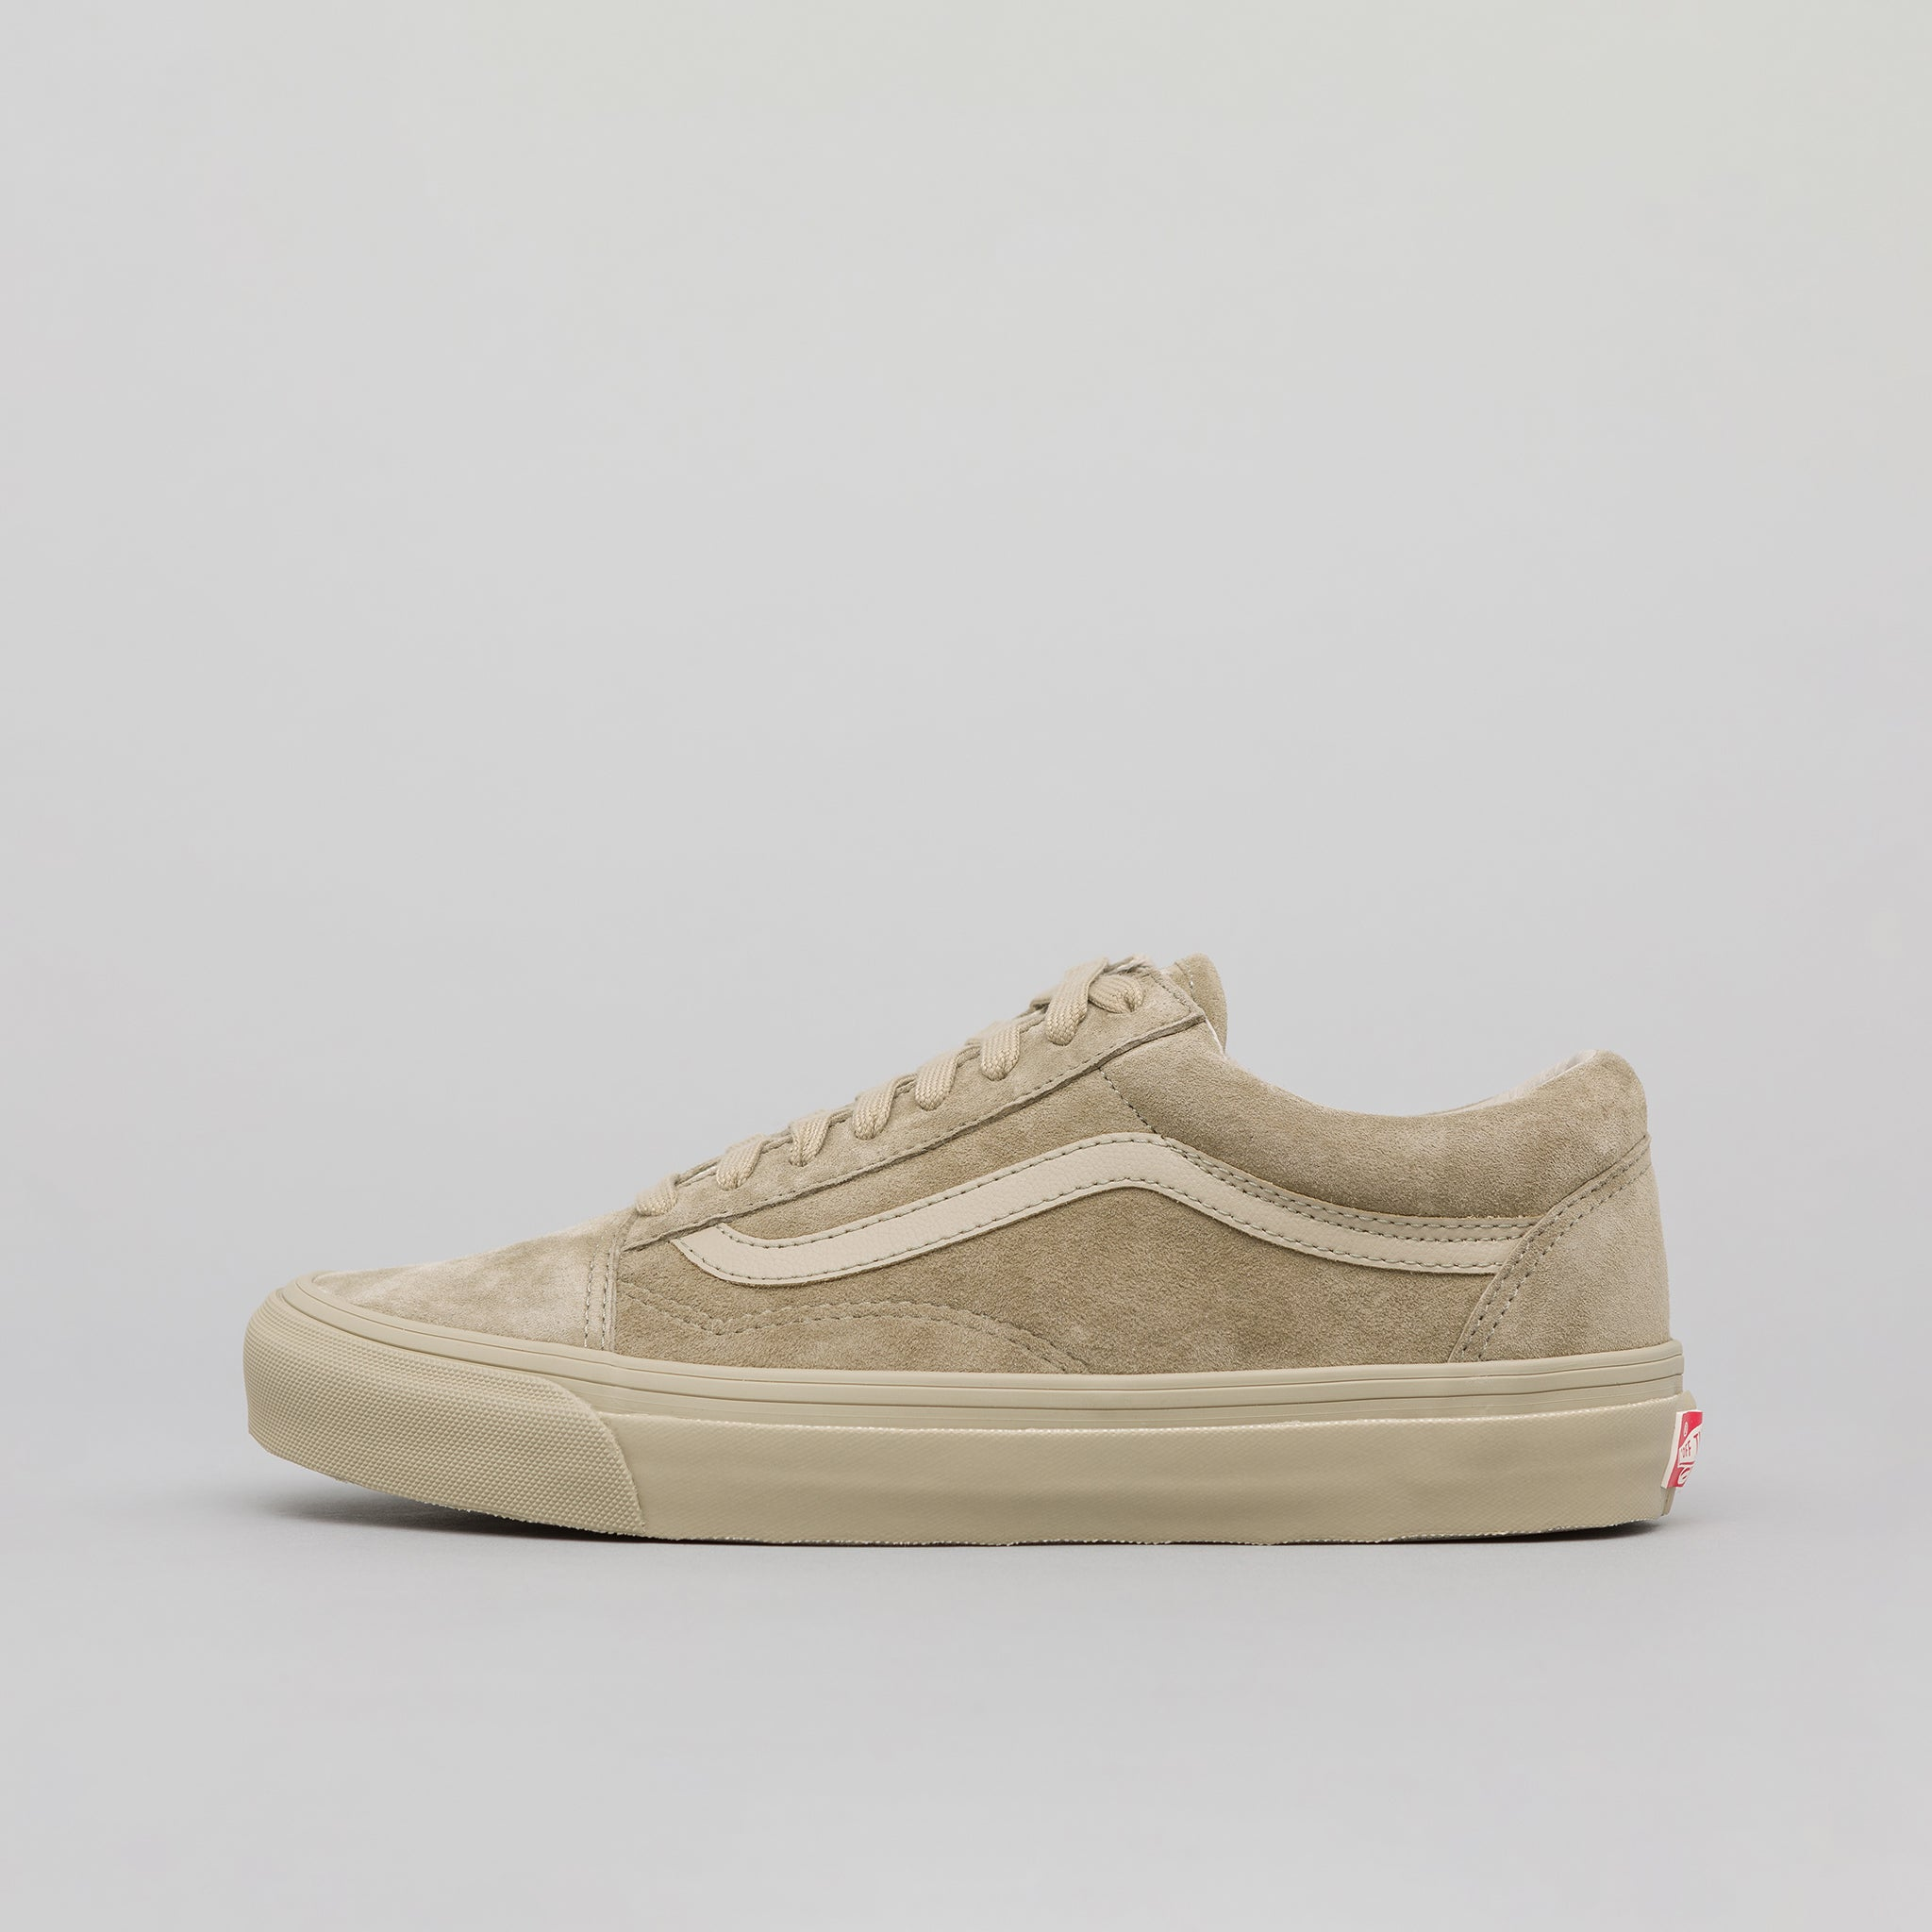 edf3940d22fa8a Old Skool LX Leather Suede in Taupe · Vans Vault